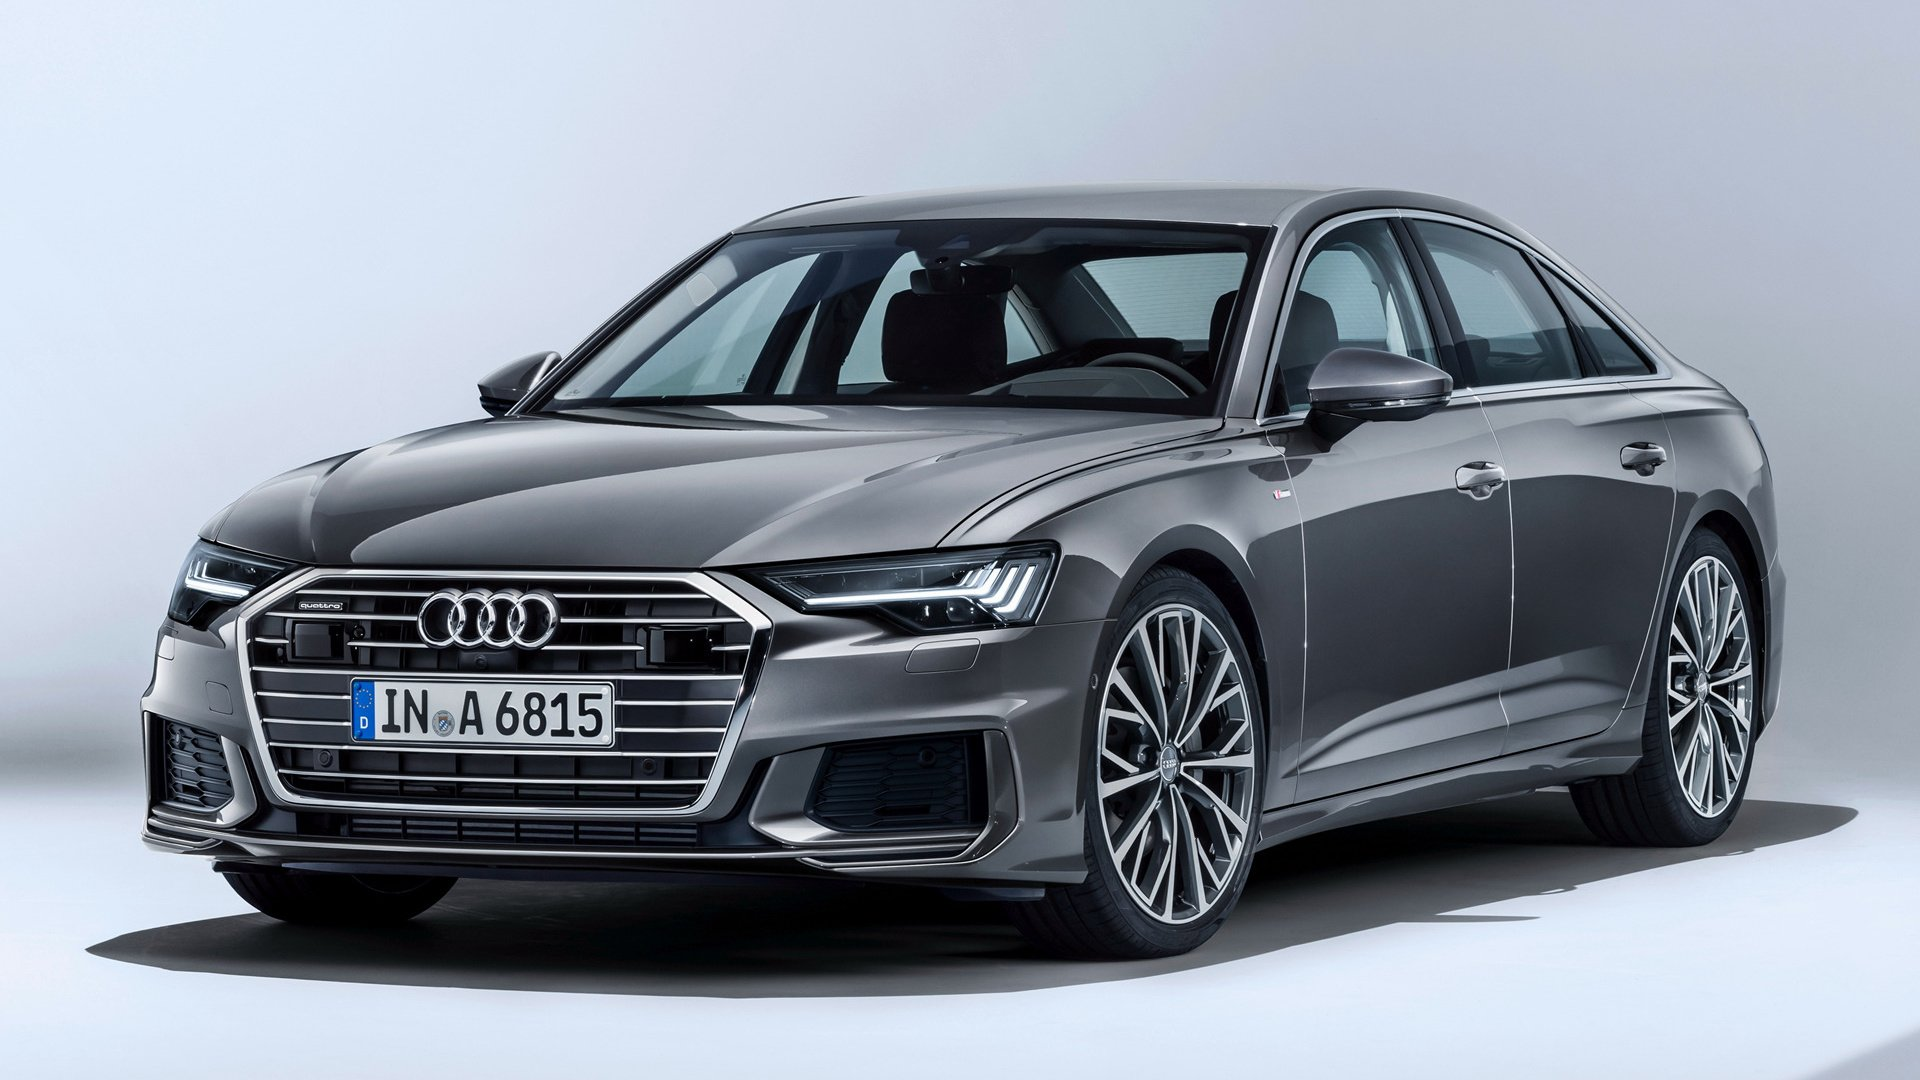 2018 Audi A6 S Line HD Wallpaper   Background Image ...